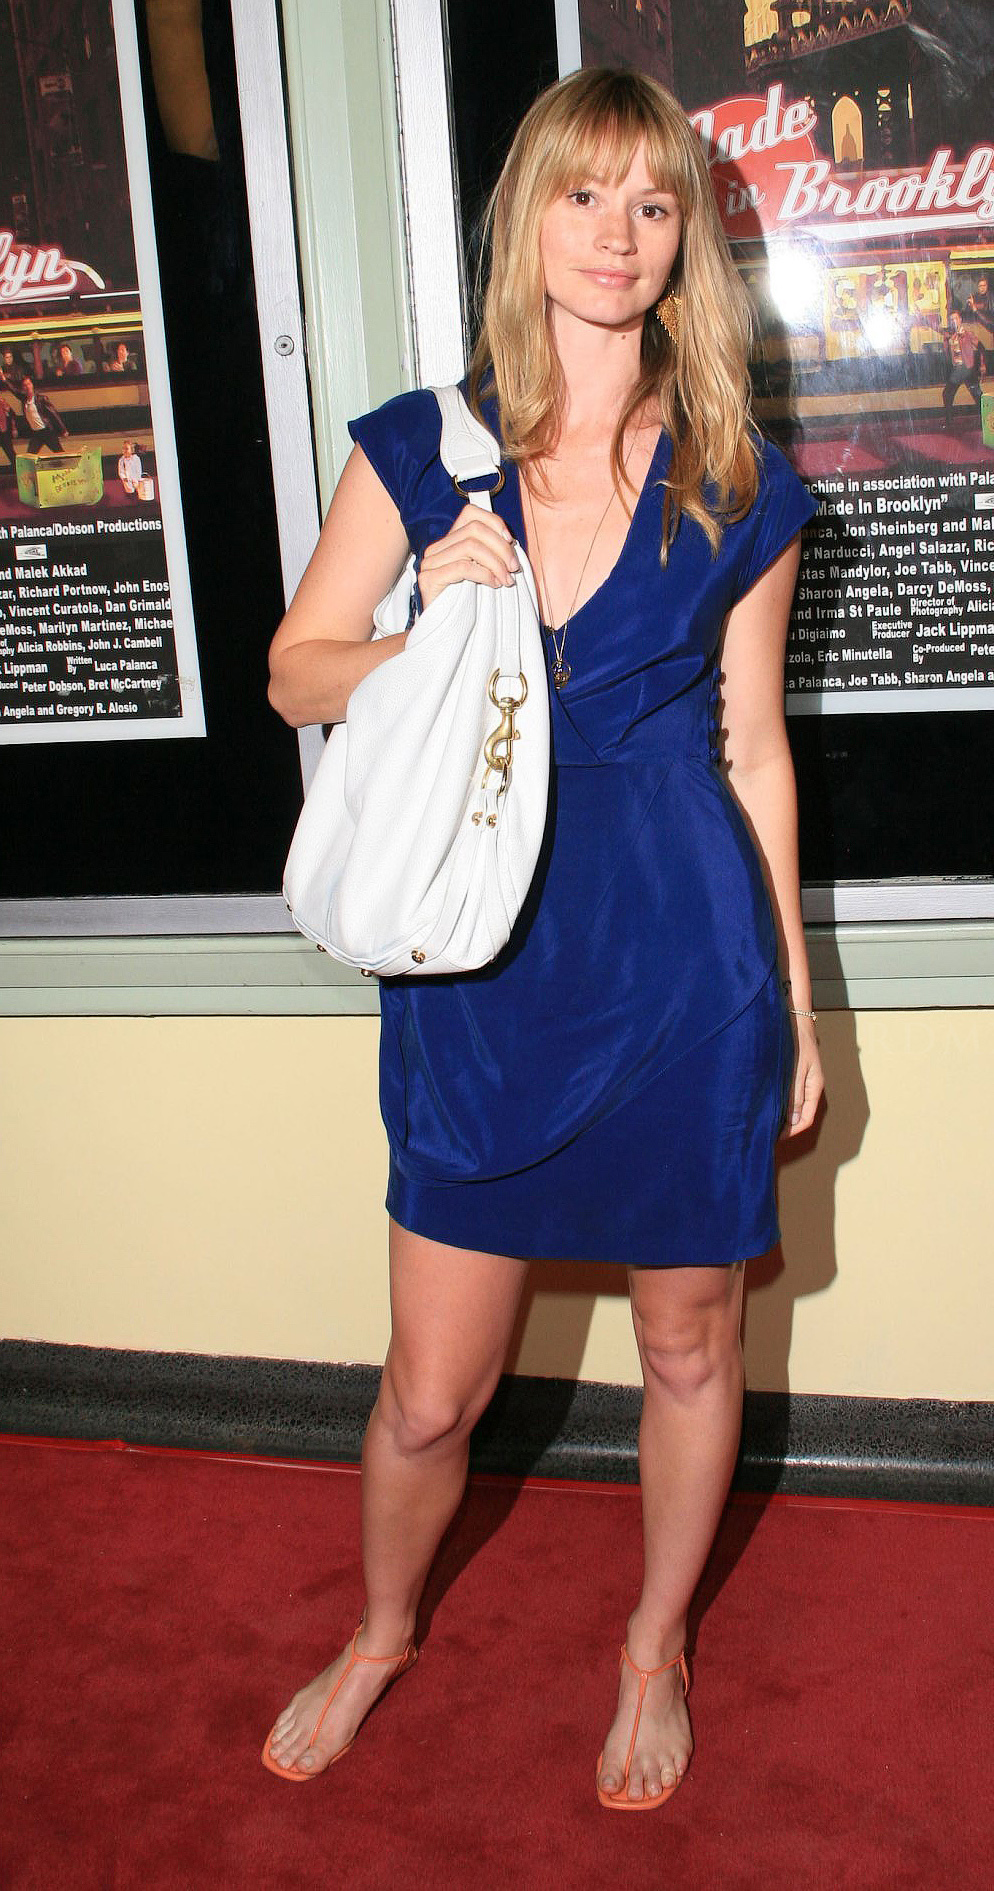 Cameron Richardson nude (32 foto and video), Topless, Leaked, Feet, cameltoe 2017